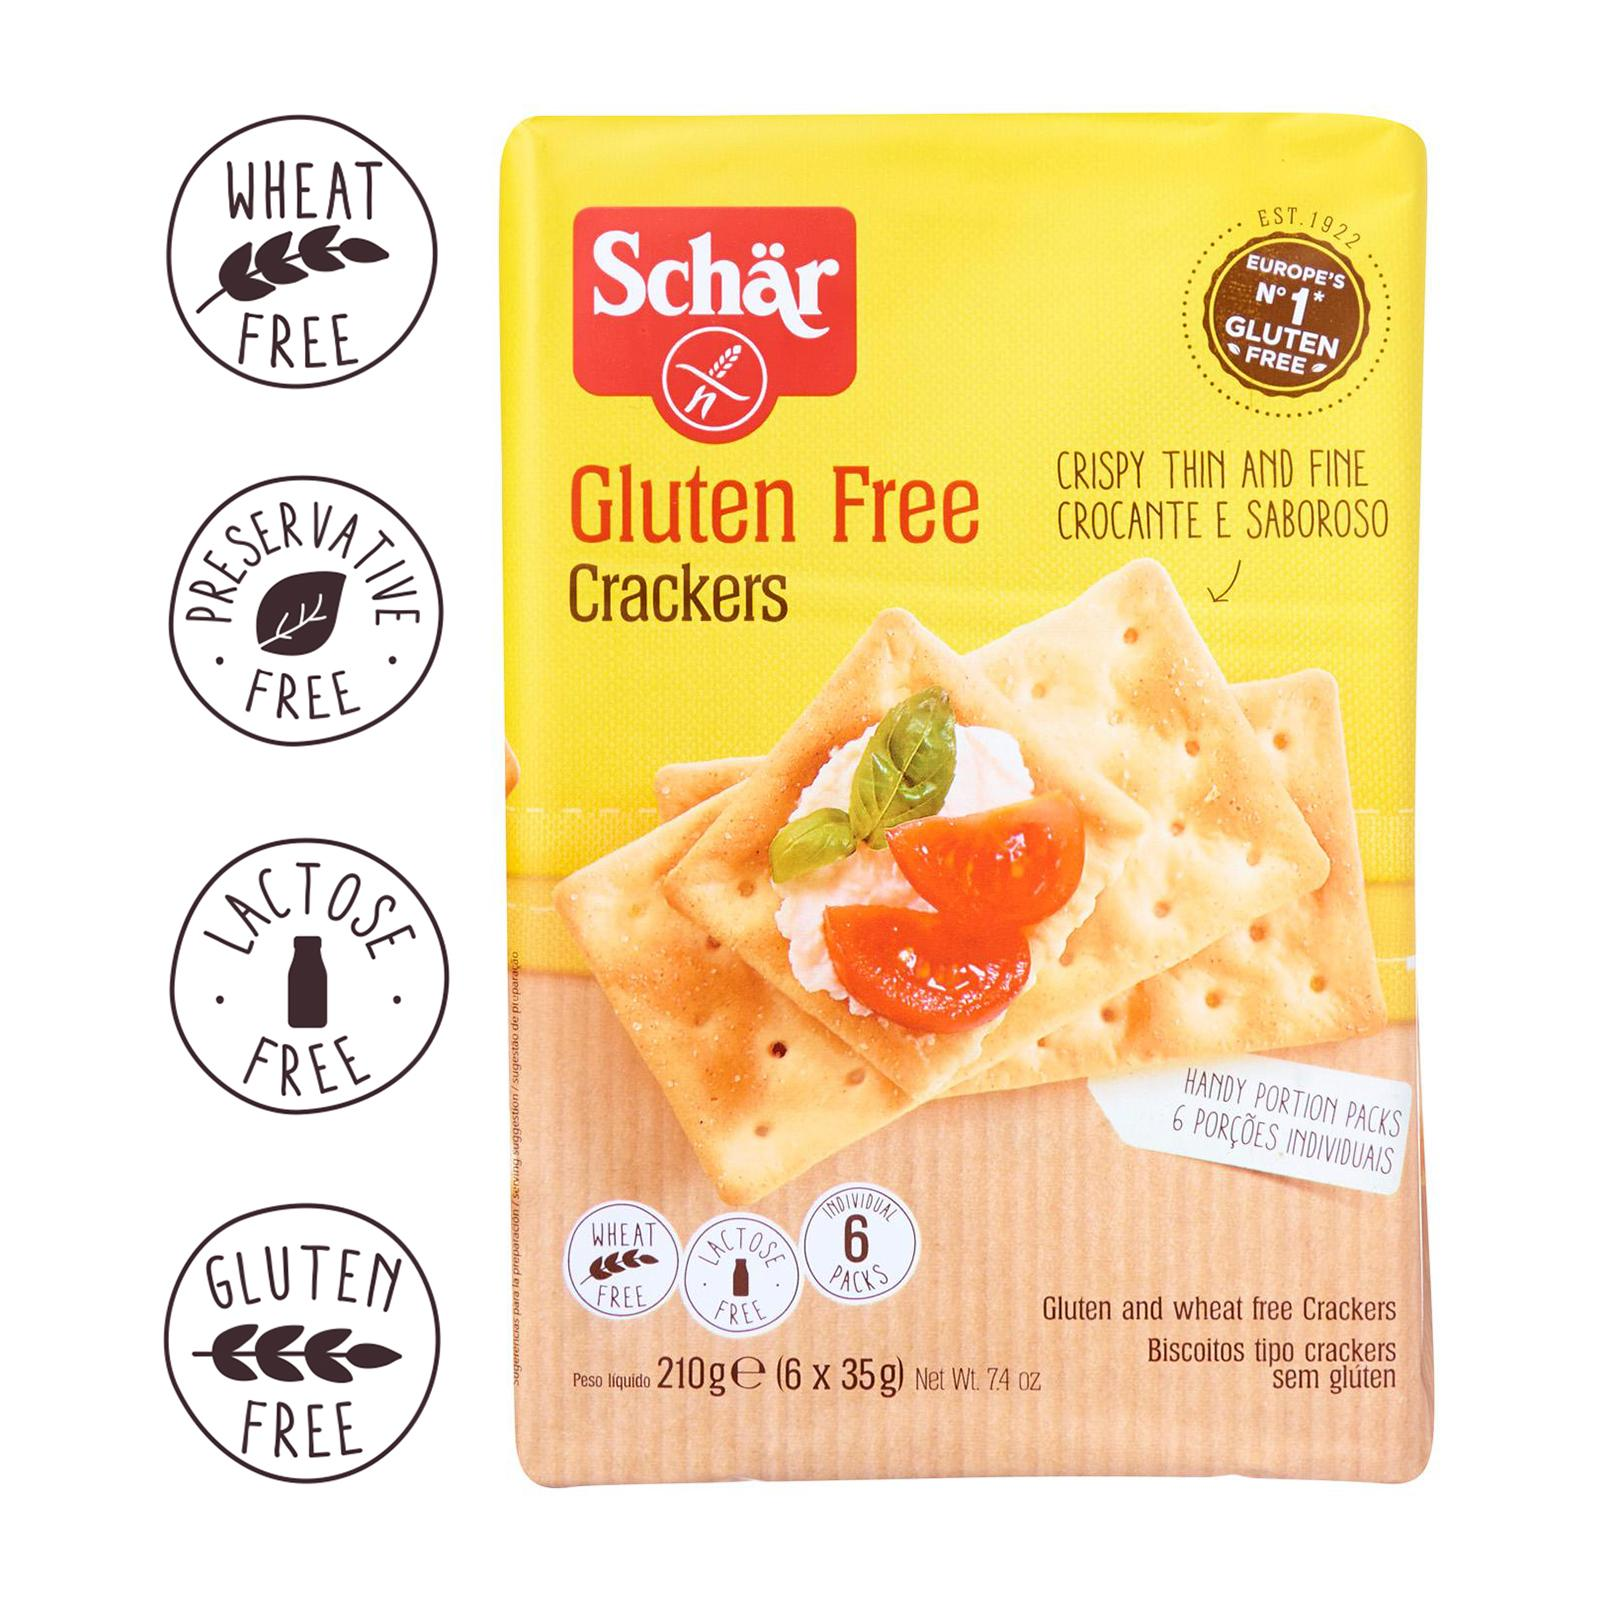 Dr. Schar Crackers - Gluten Free by Agora Products